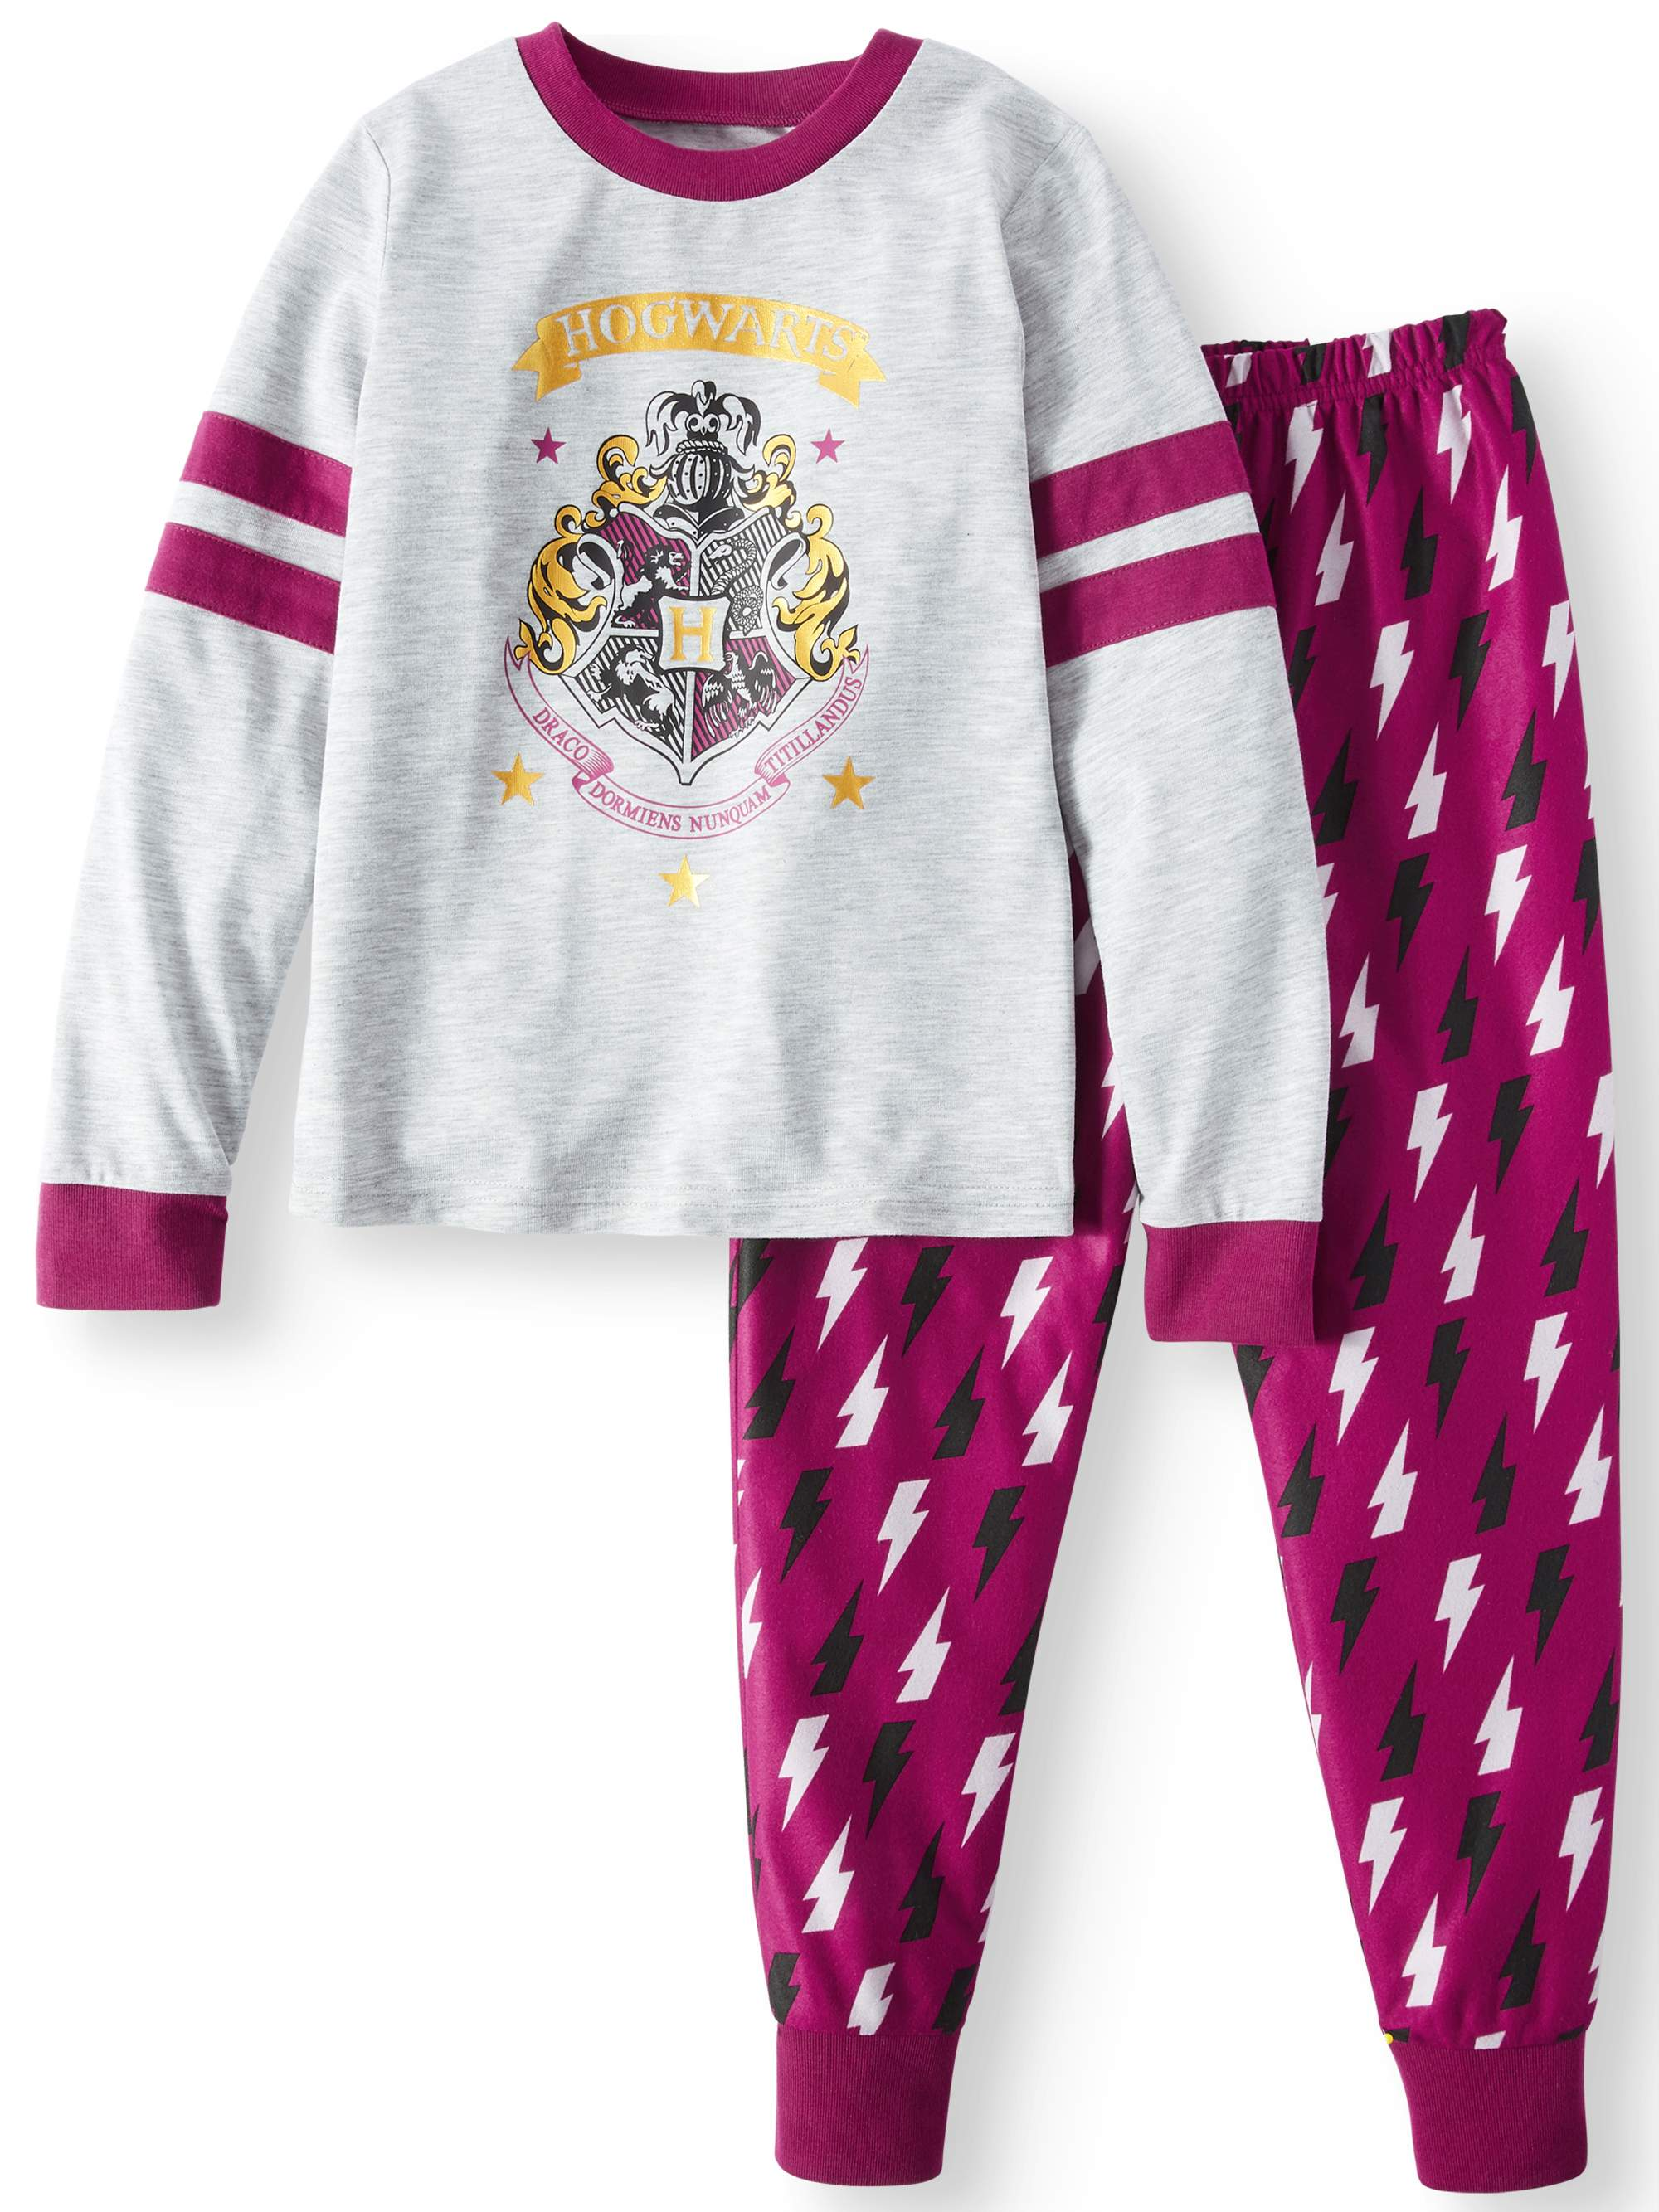 Harry Potter Girls' Pajama Sle...